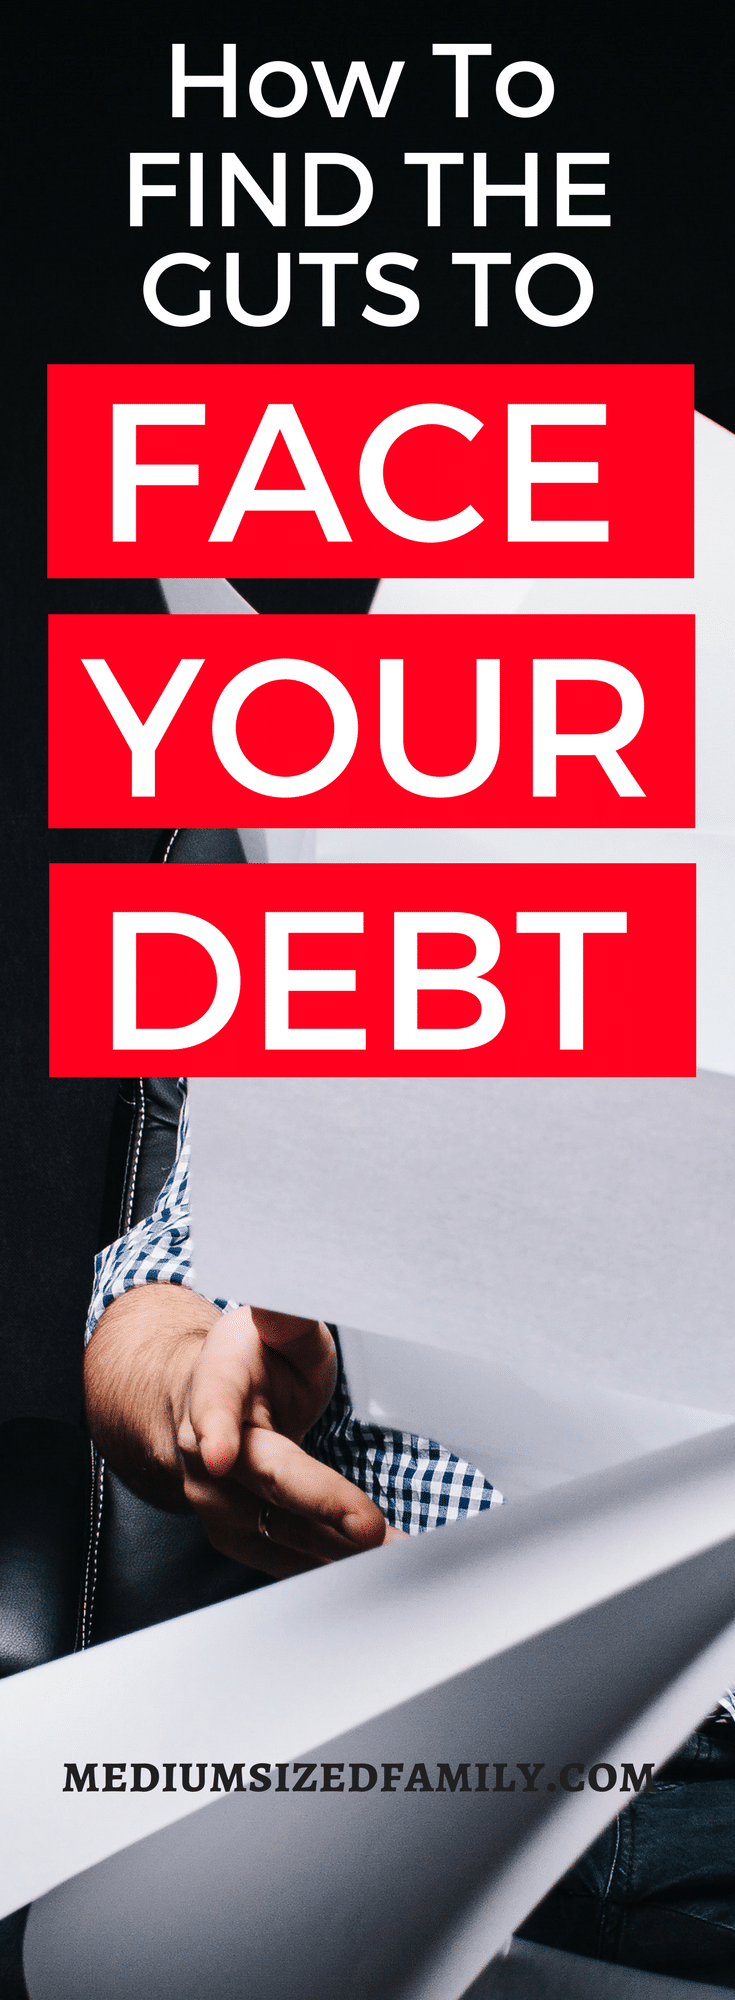 The first solution for debt is to find all of your bills. This is HARD! But with some help, you can totally do it. You'll love the feeling of taking control of your money.